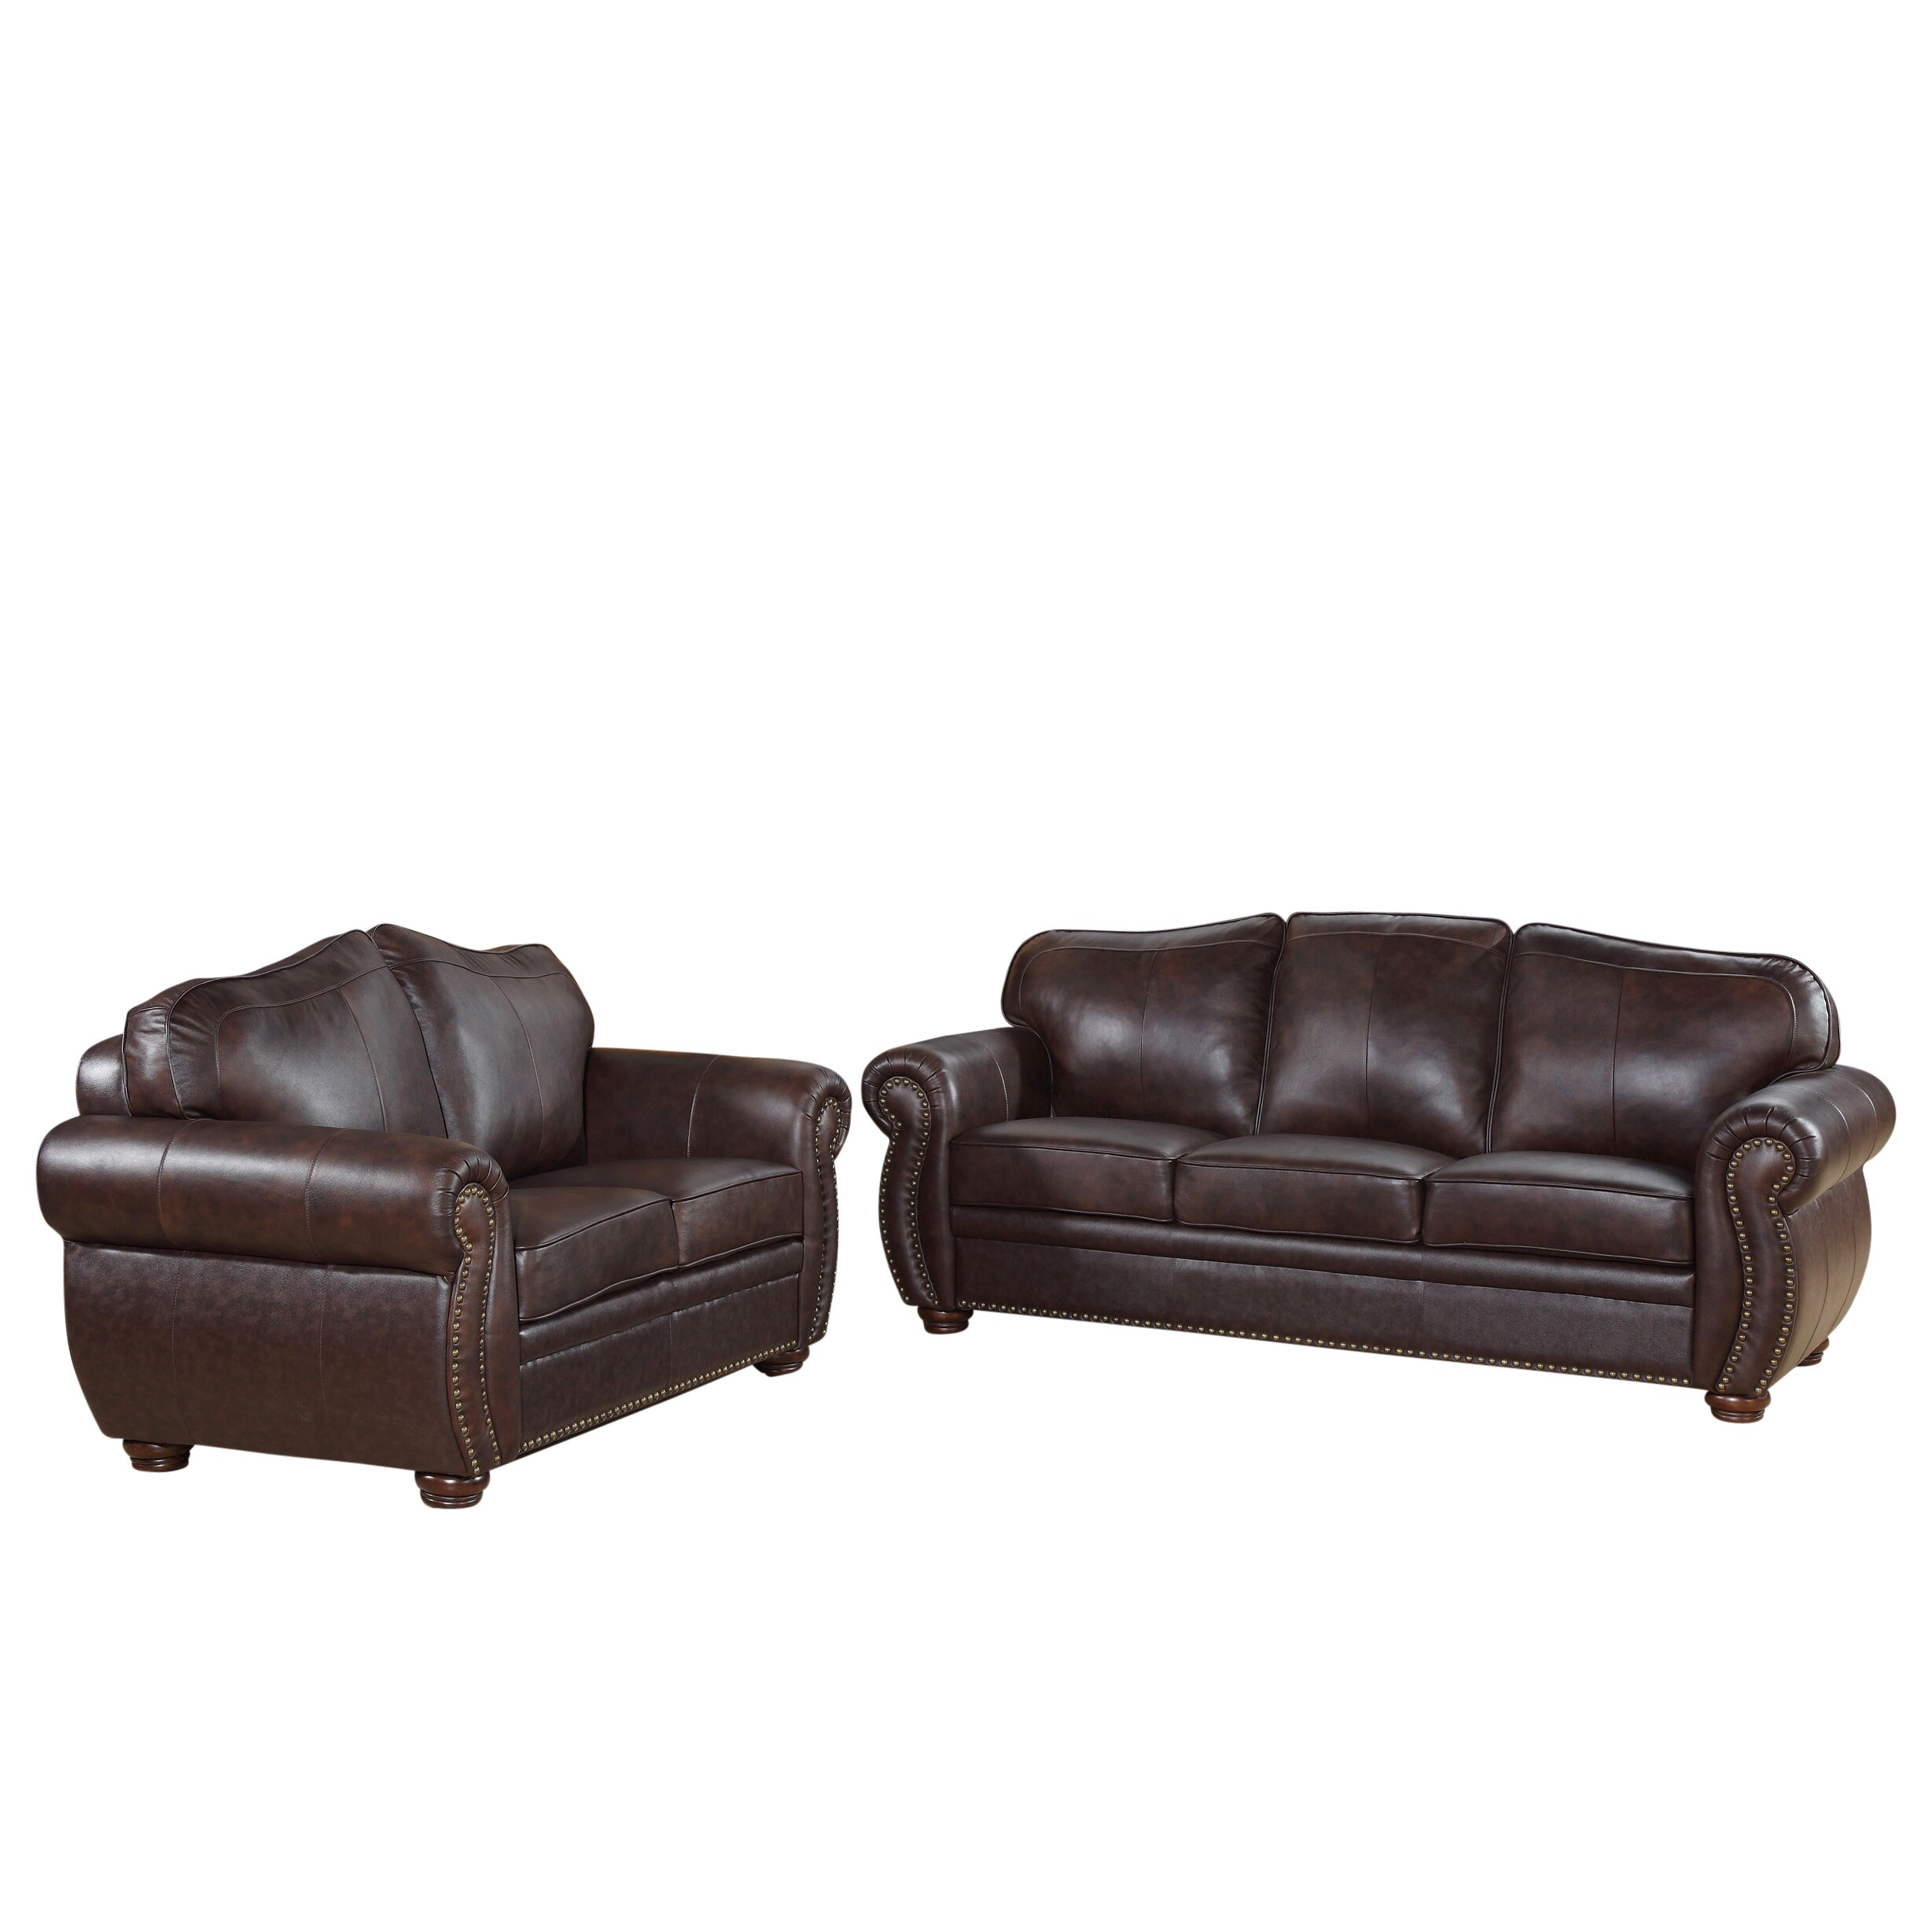 Darby home co morgenstern leather sofa and loveseat set for Leather sofa and loveseat set